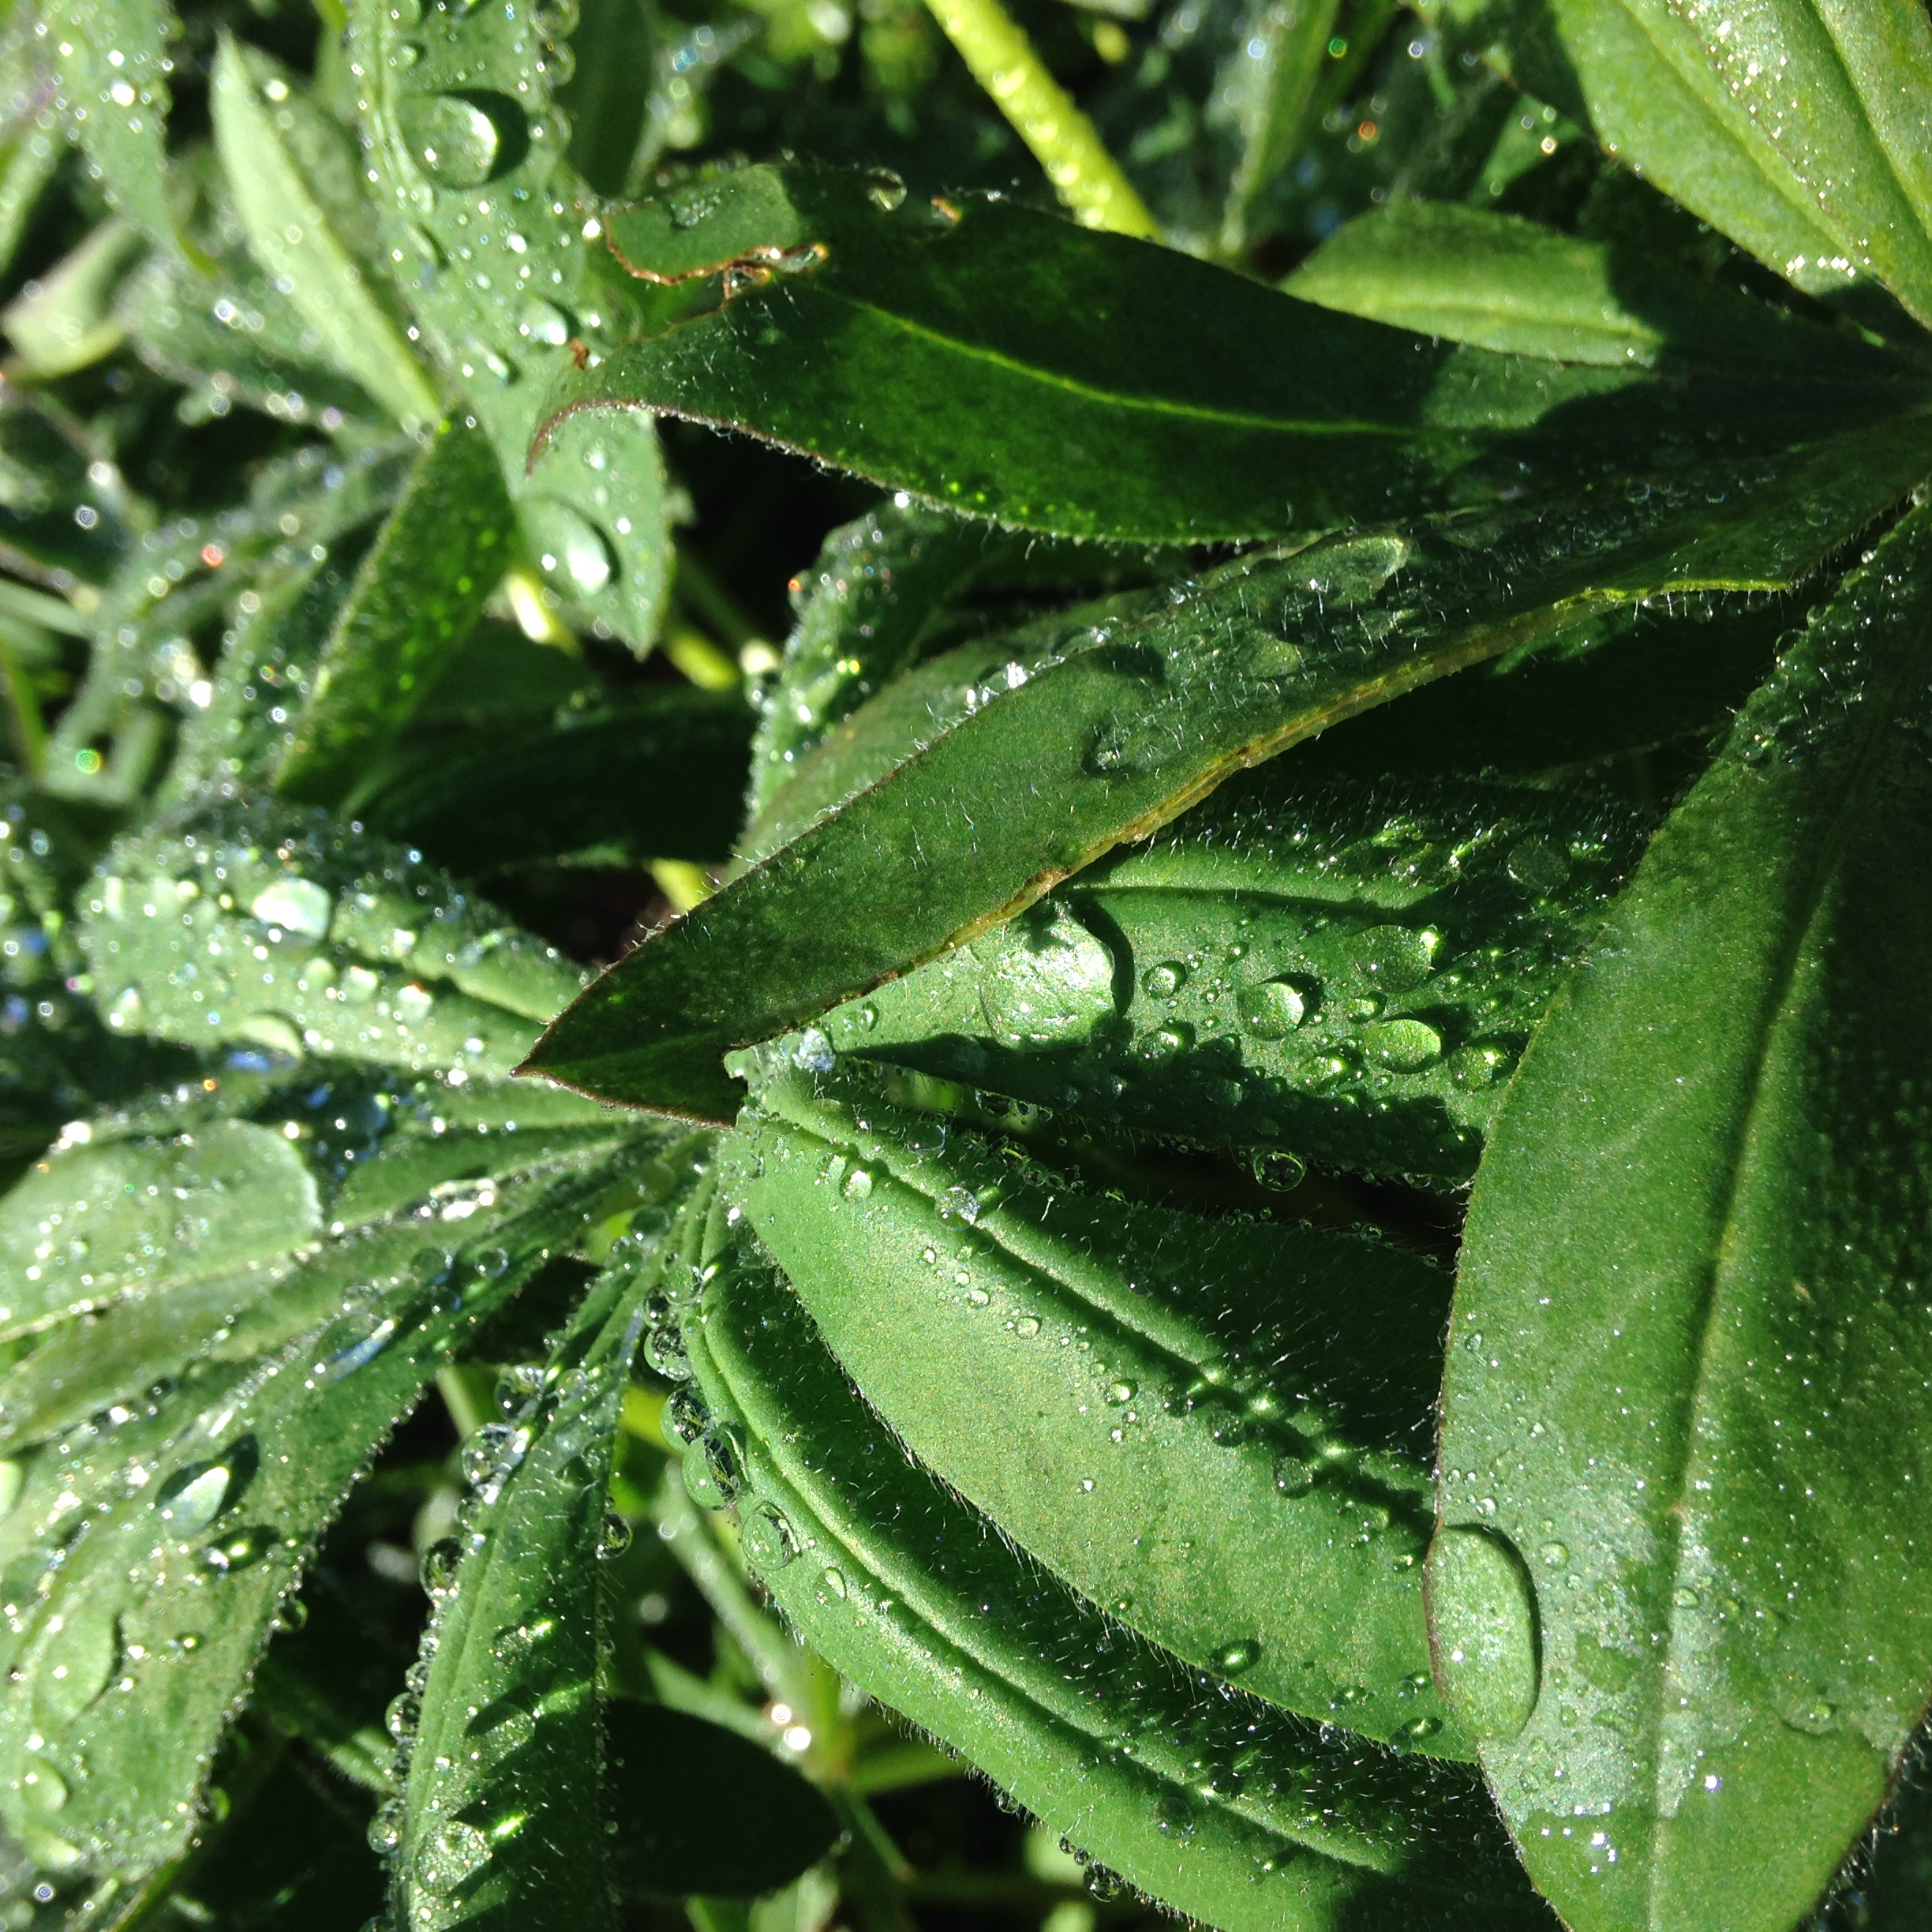 Droplets clinging to the leaves of a lupine.